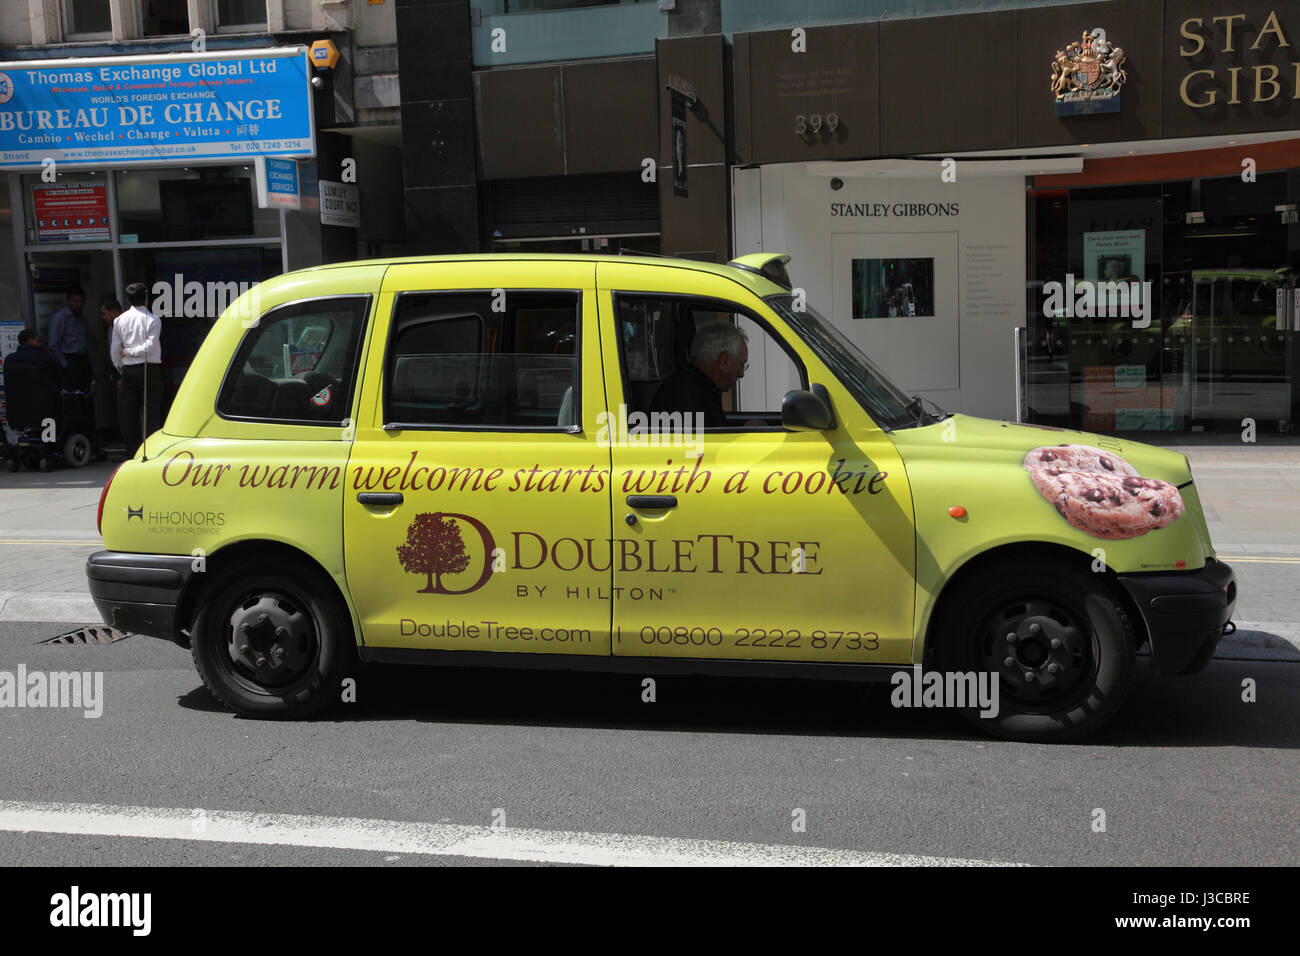 A taxi cab advertising Hilton DoubleTree hotels on the Strand, London - Stock Image